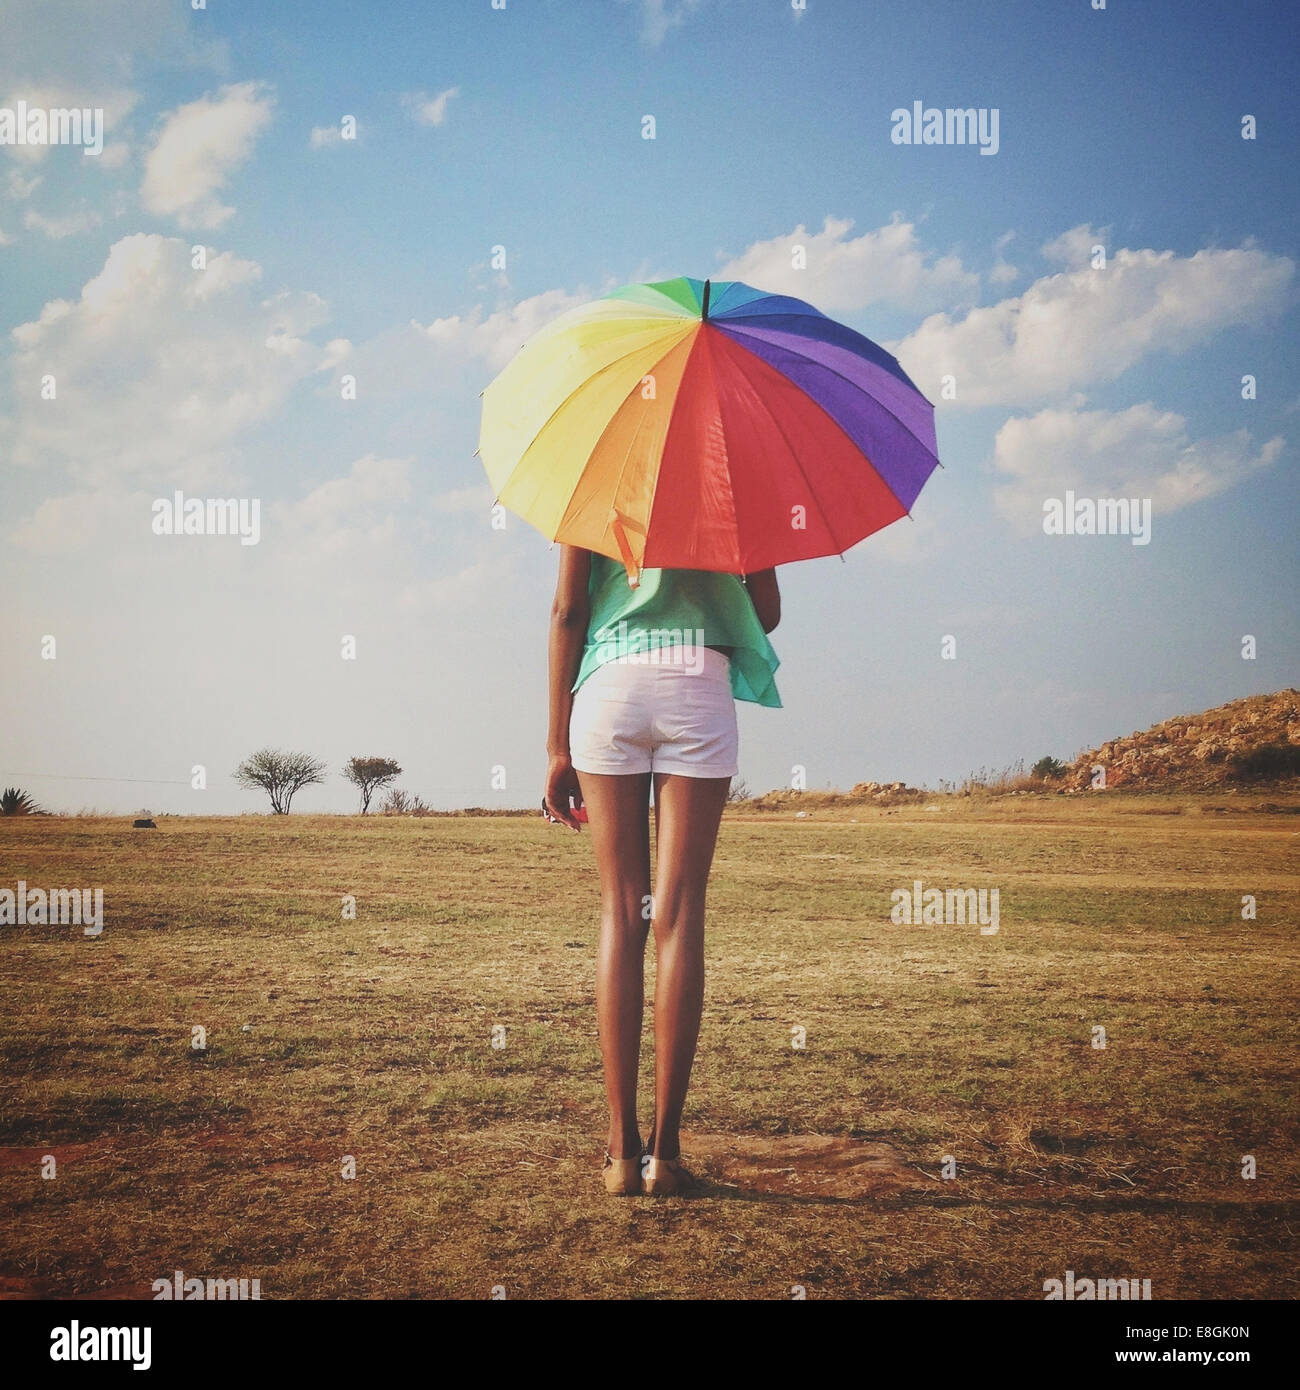 South Africa, Gauteng, Johannesburg, Roodepoort, Lady with Rainbow Umbrella - Stock Image